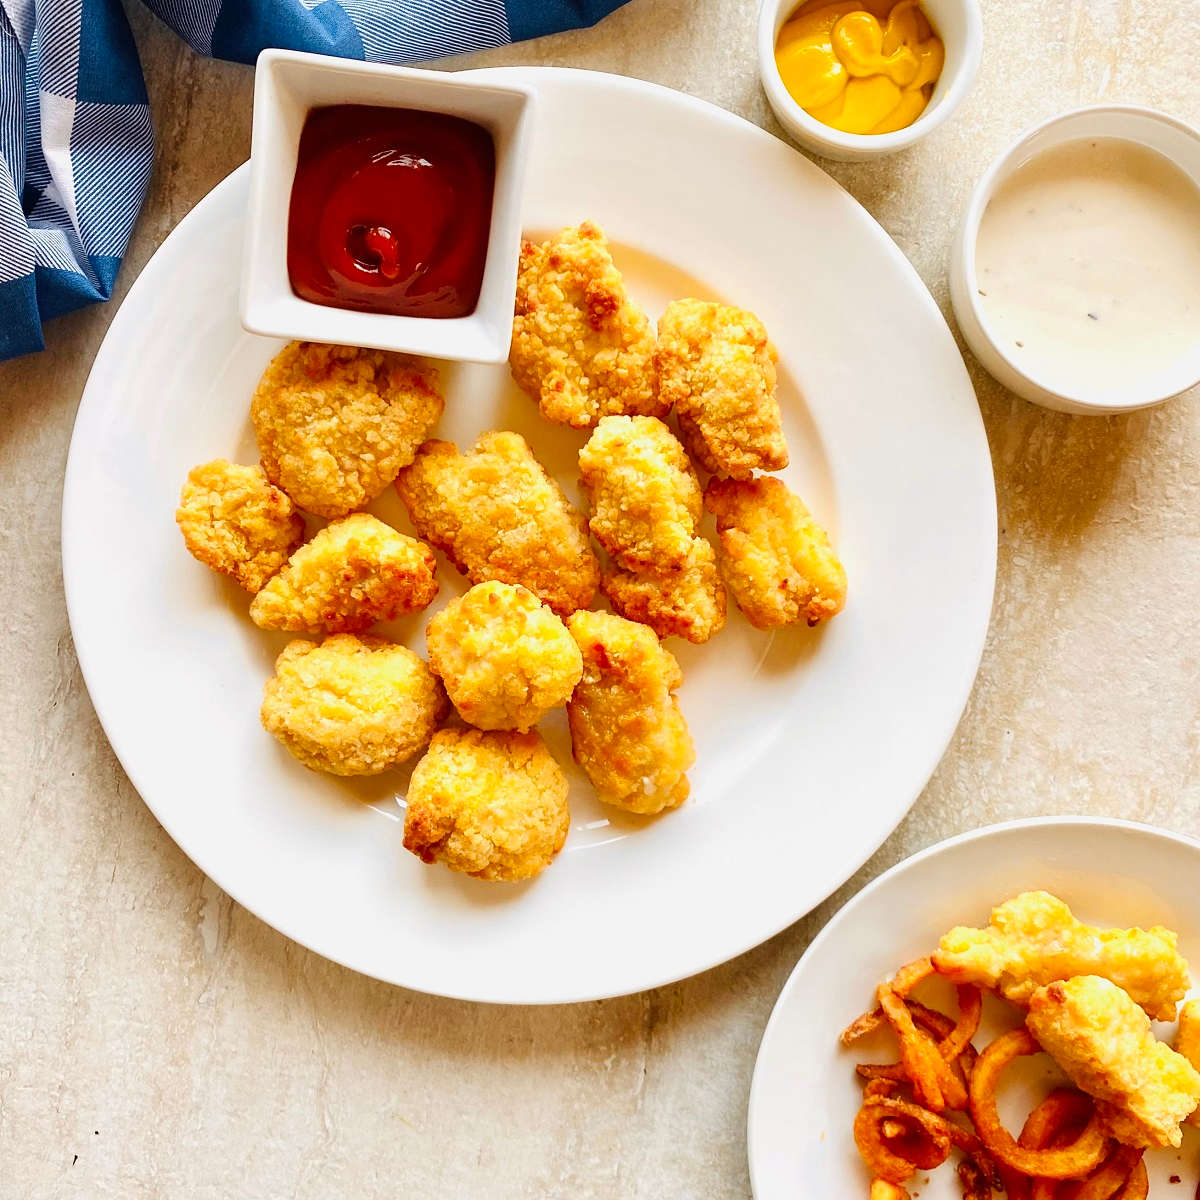 frozen chicken nuggets cooked in air fryer on a plate with ketchup and mustard for dipping